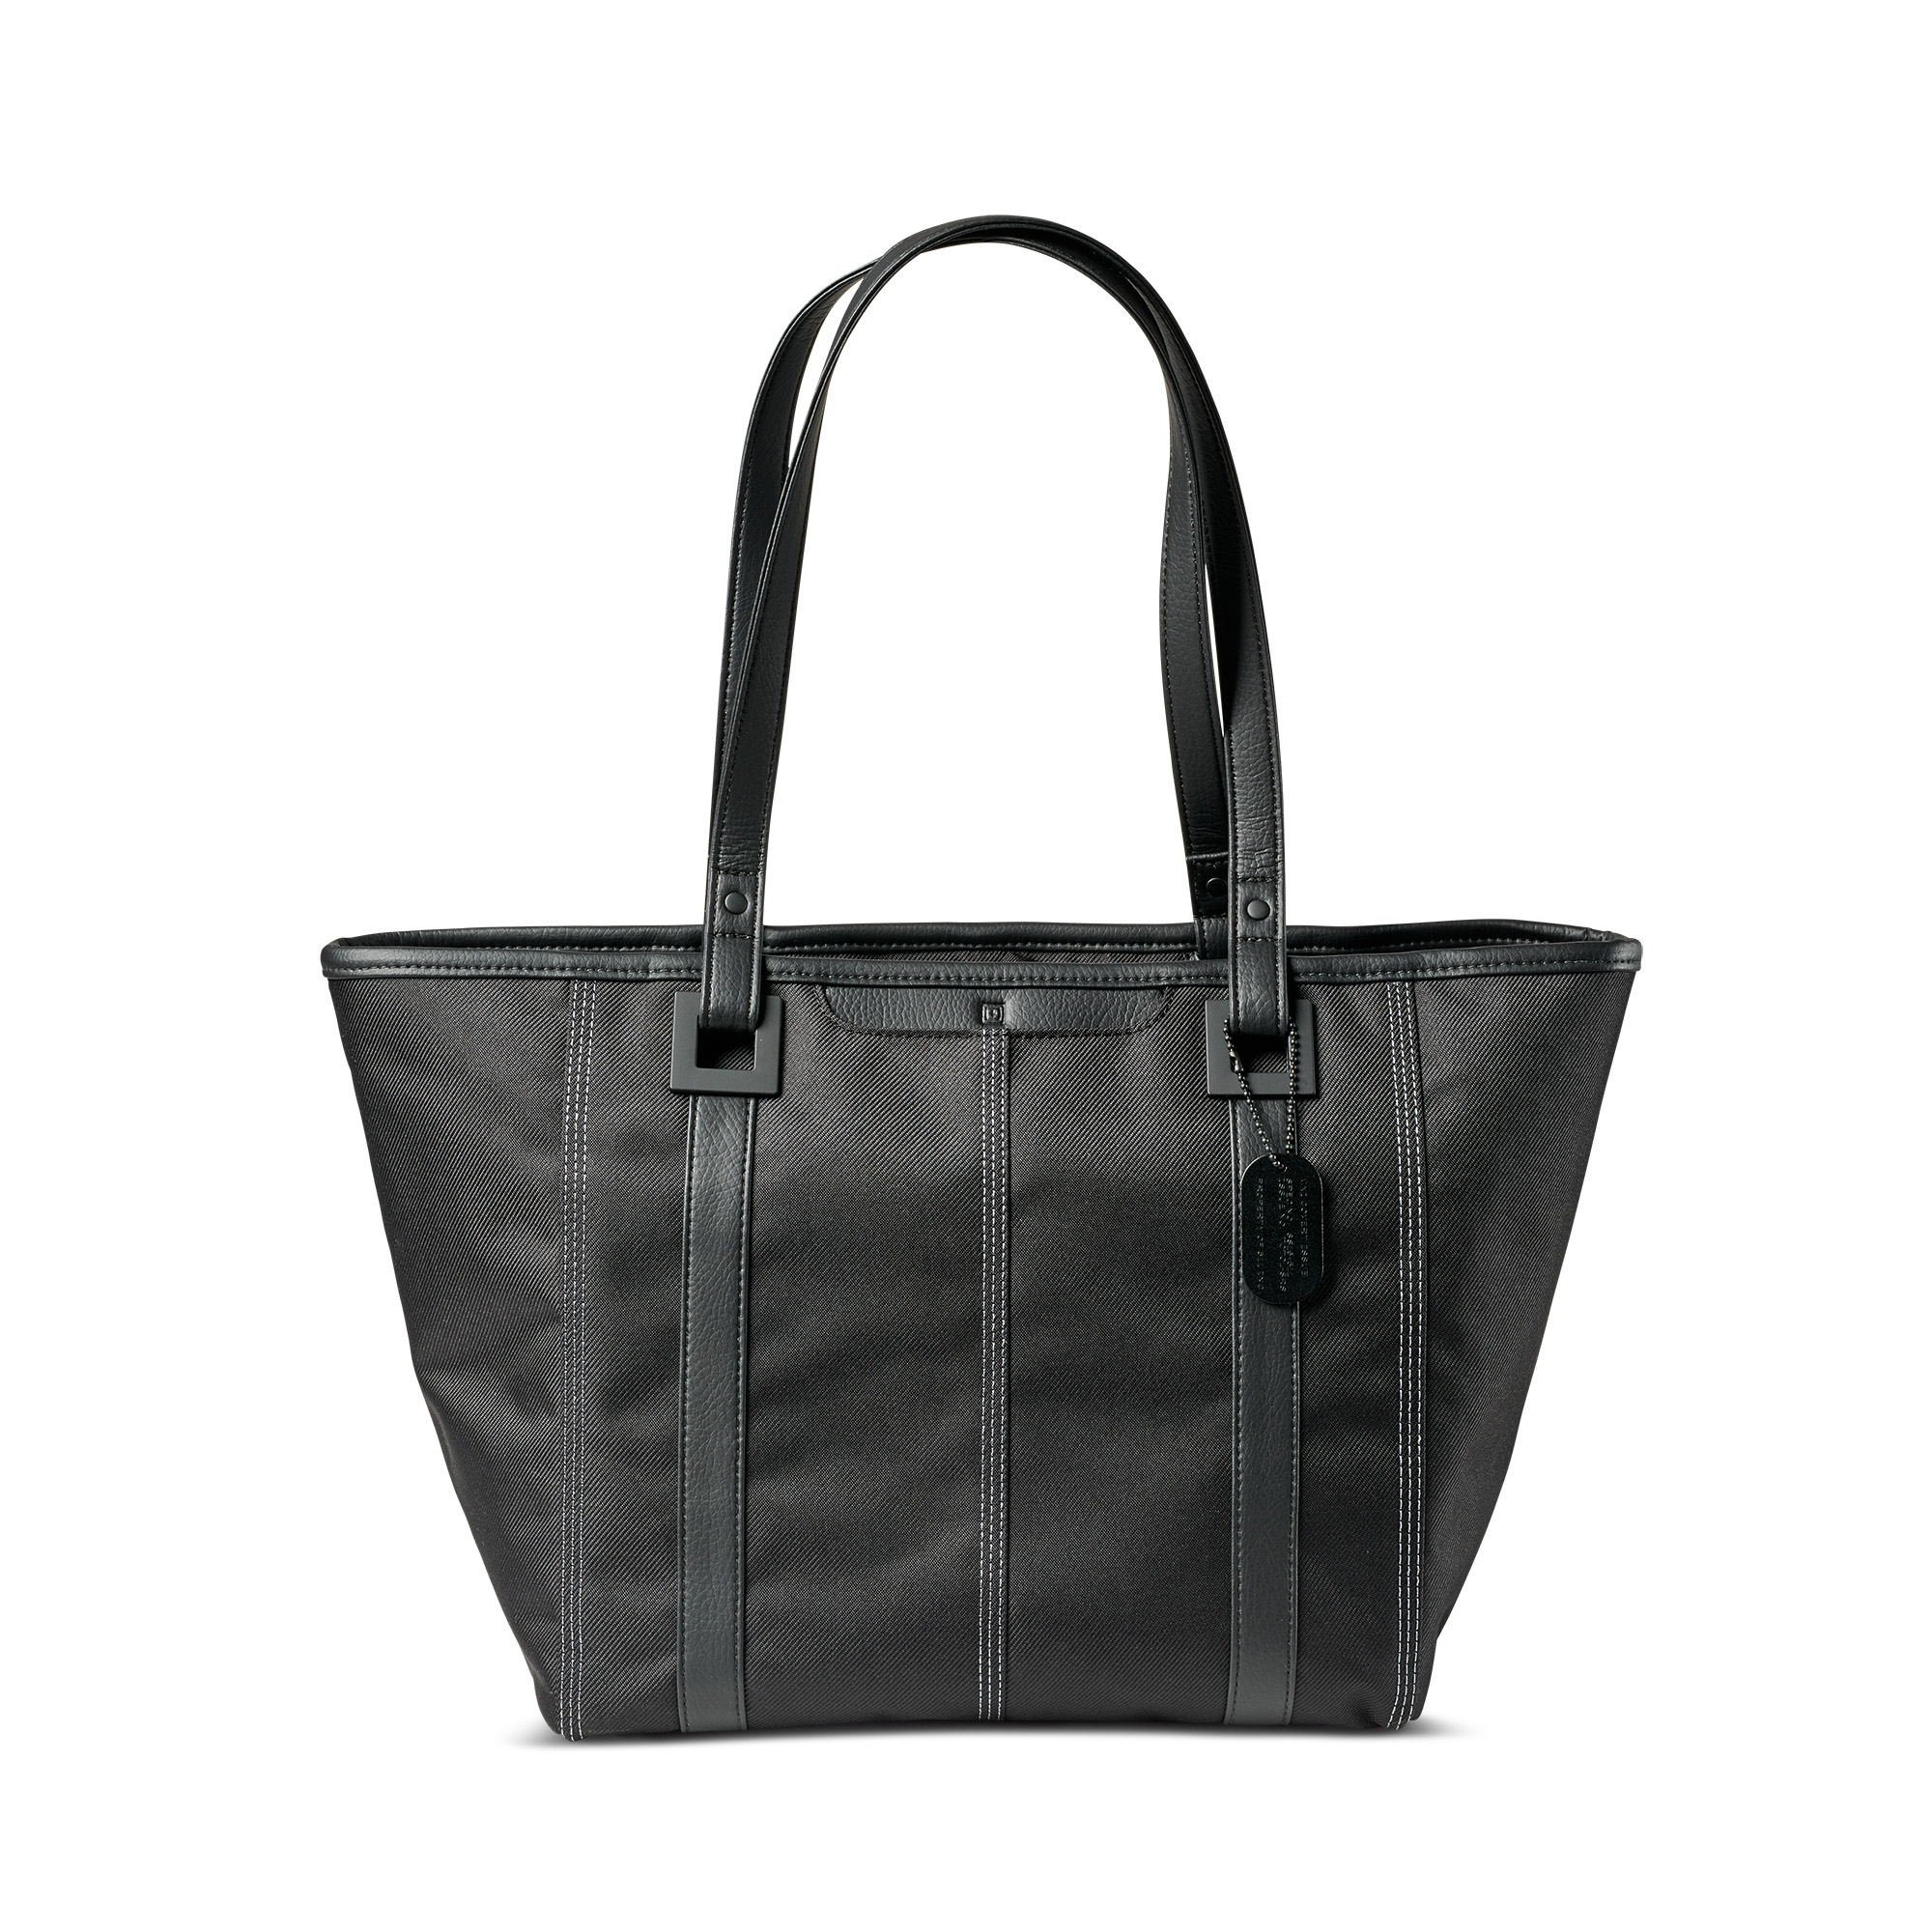 5.11 Tactical Women's Lucy Tote Twill (Black)